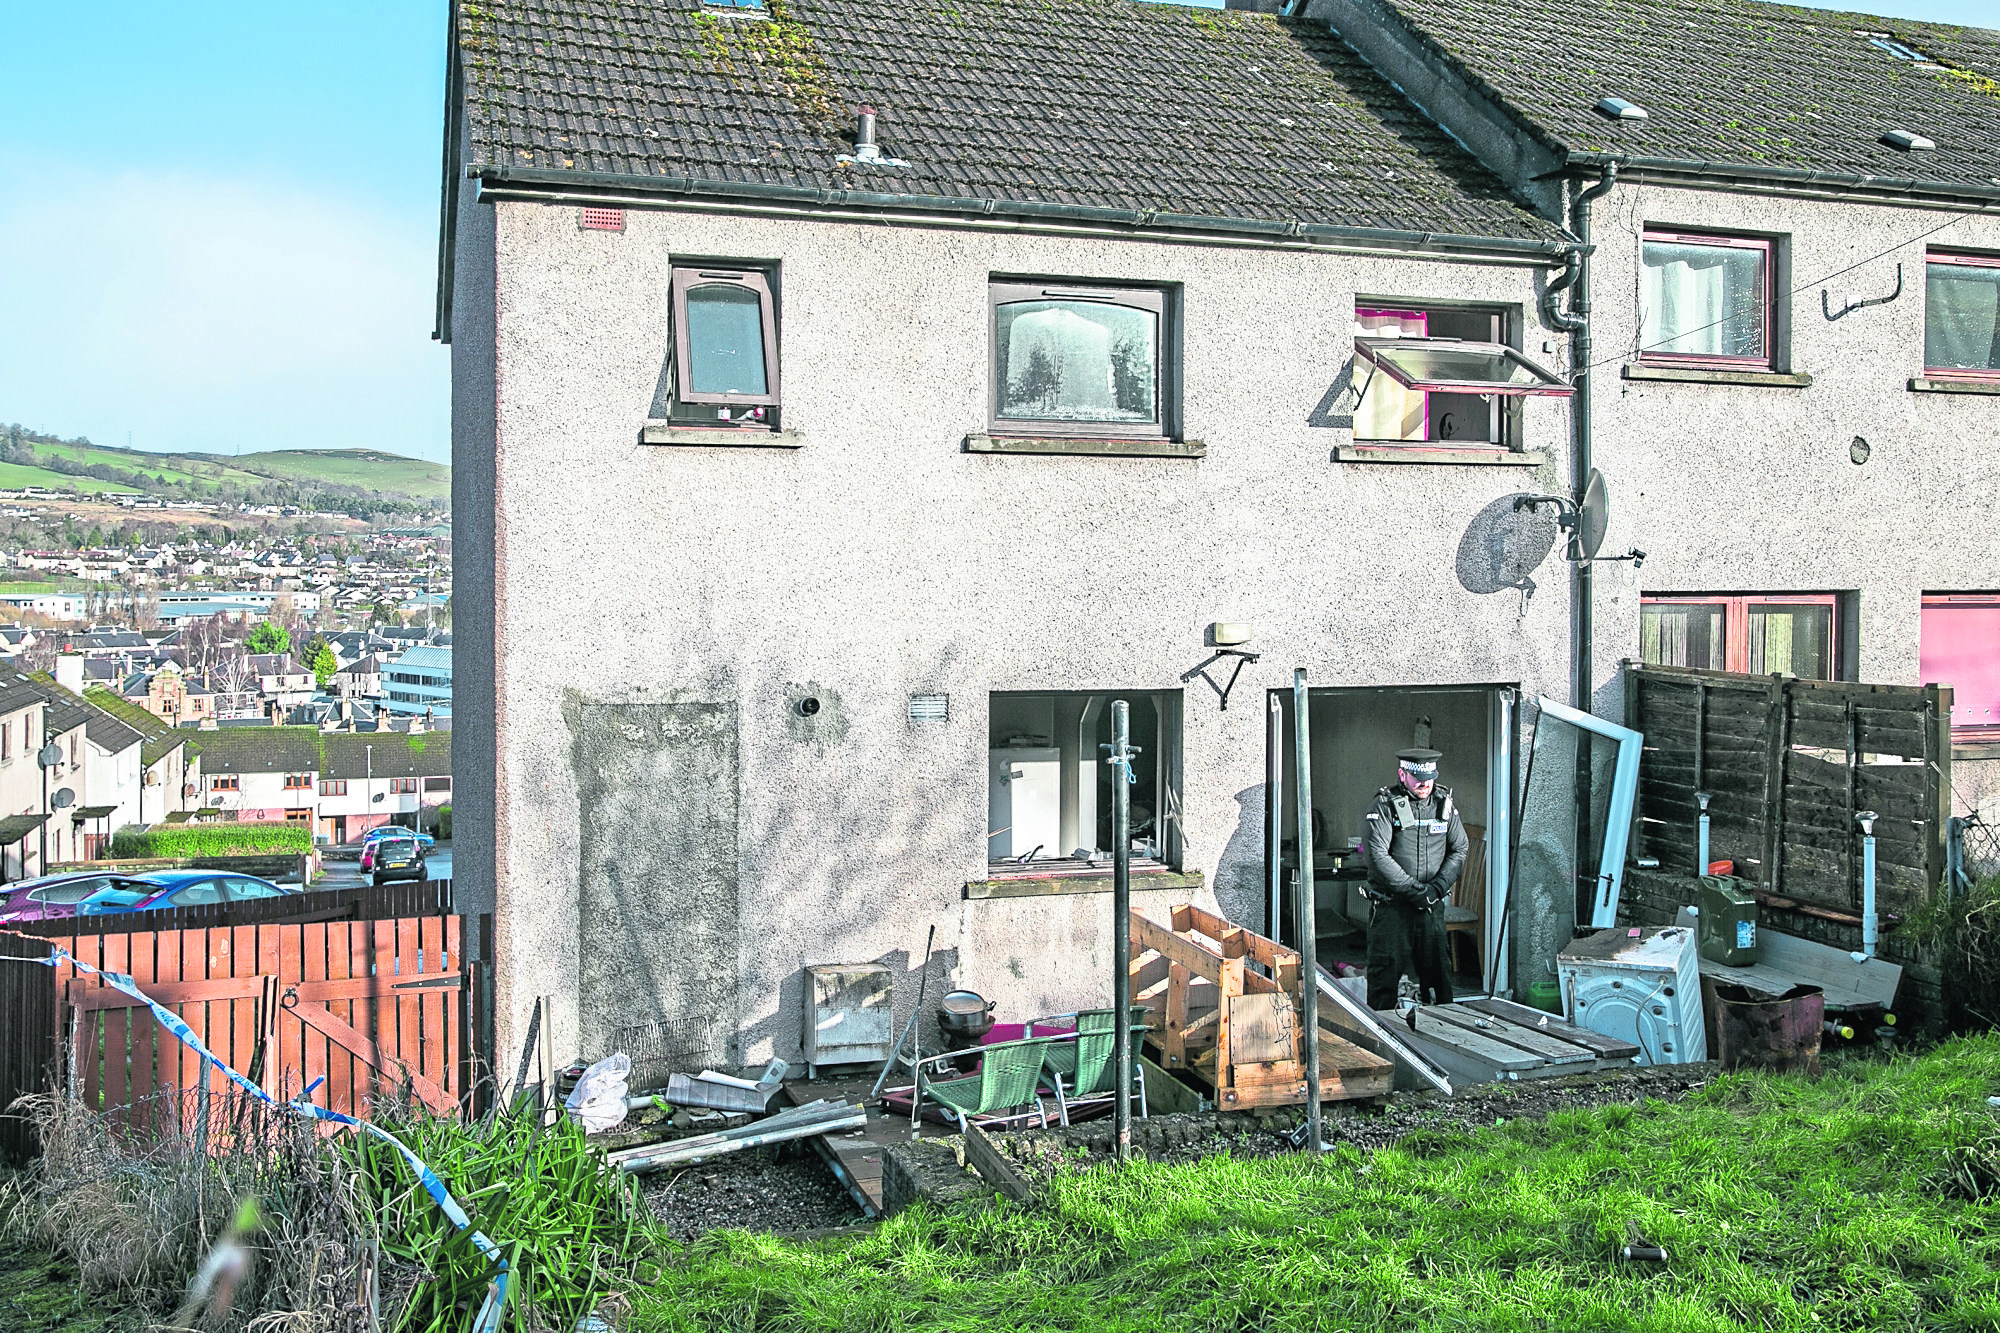 Police maintain a presence at  a house in Dingwall where a suspected small explosion took place hospitalising two.